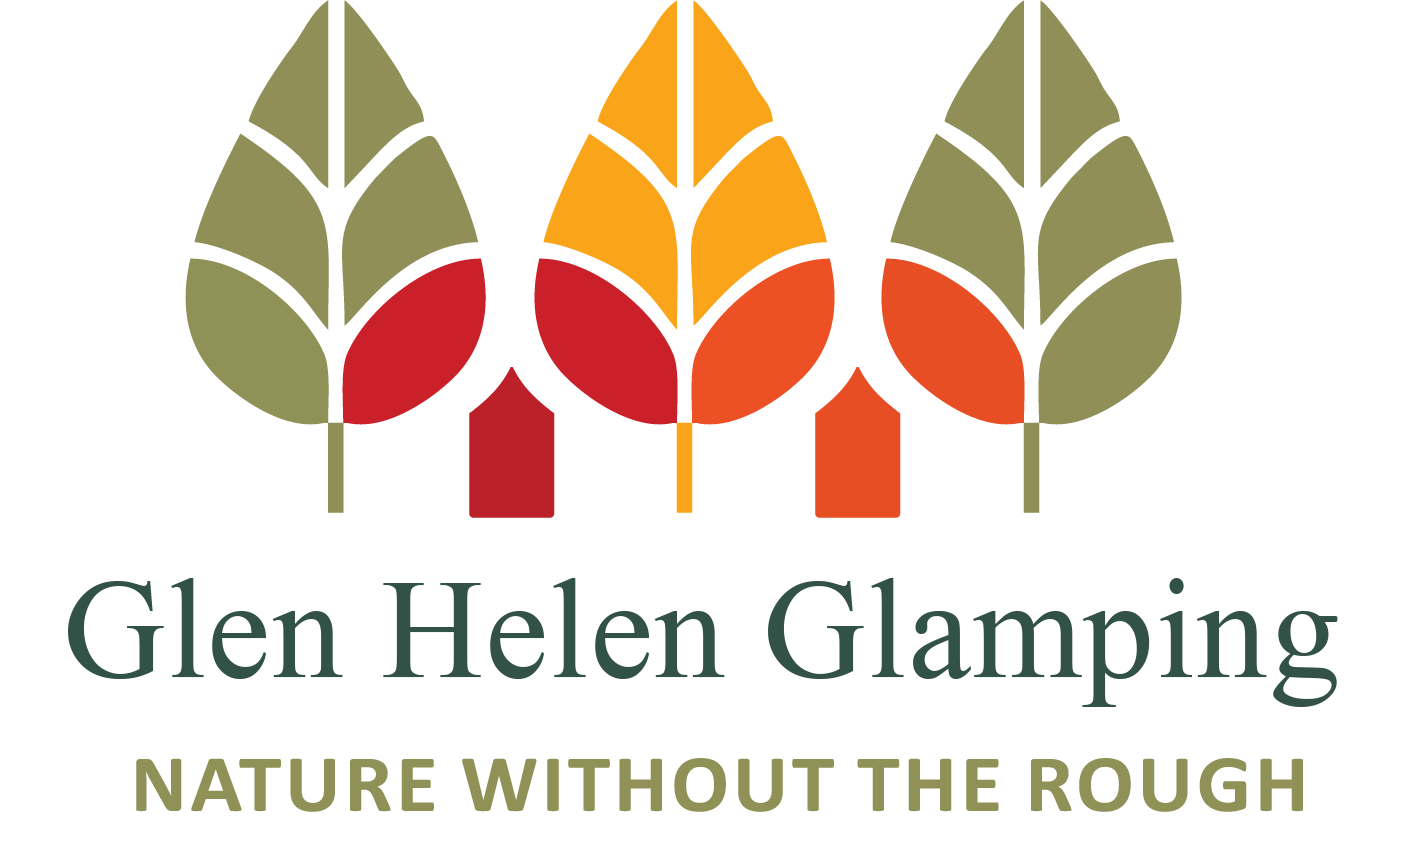 Glen Helen Glamping Ltd